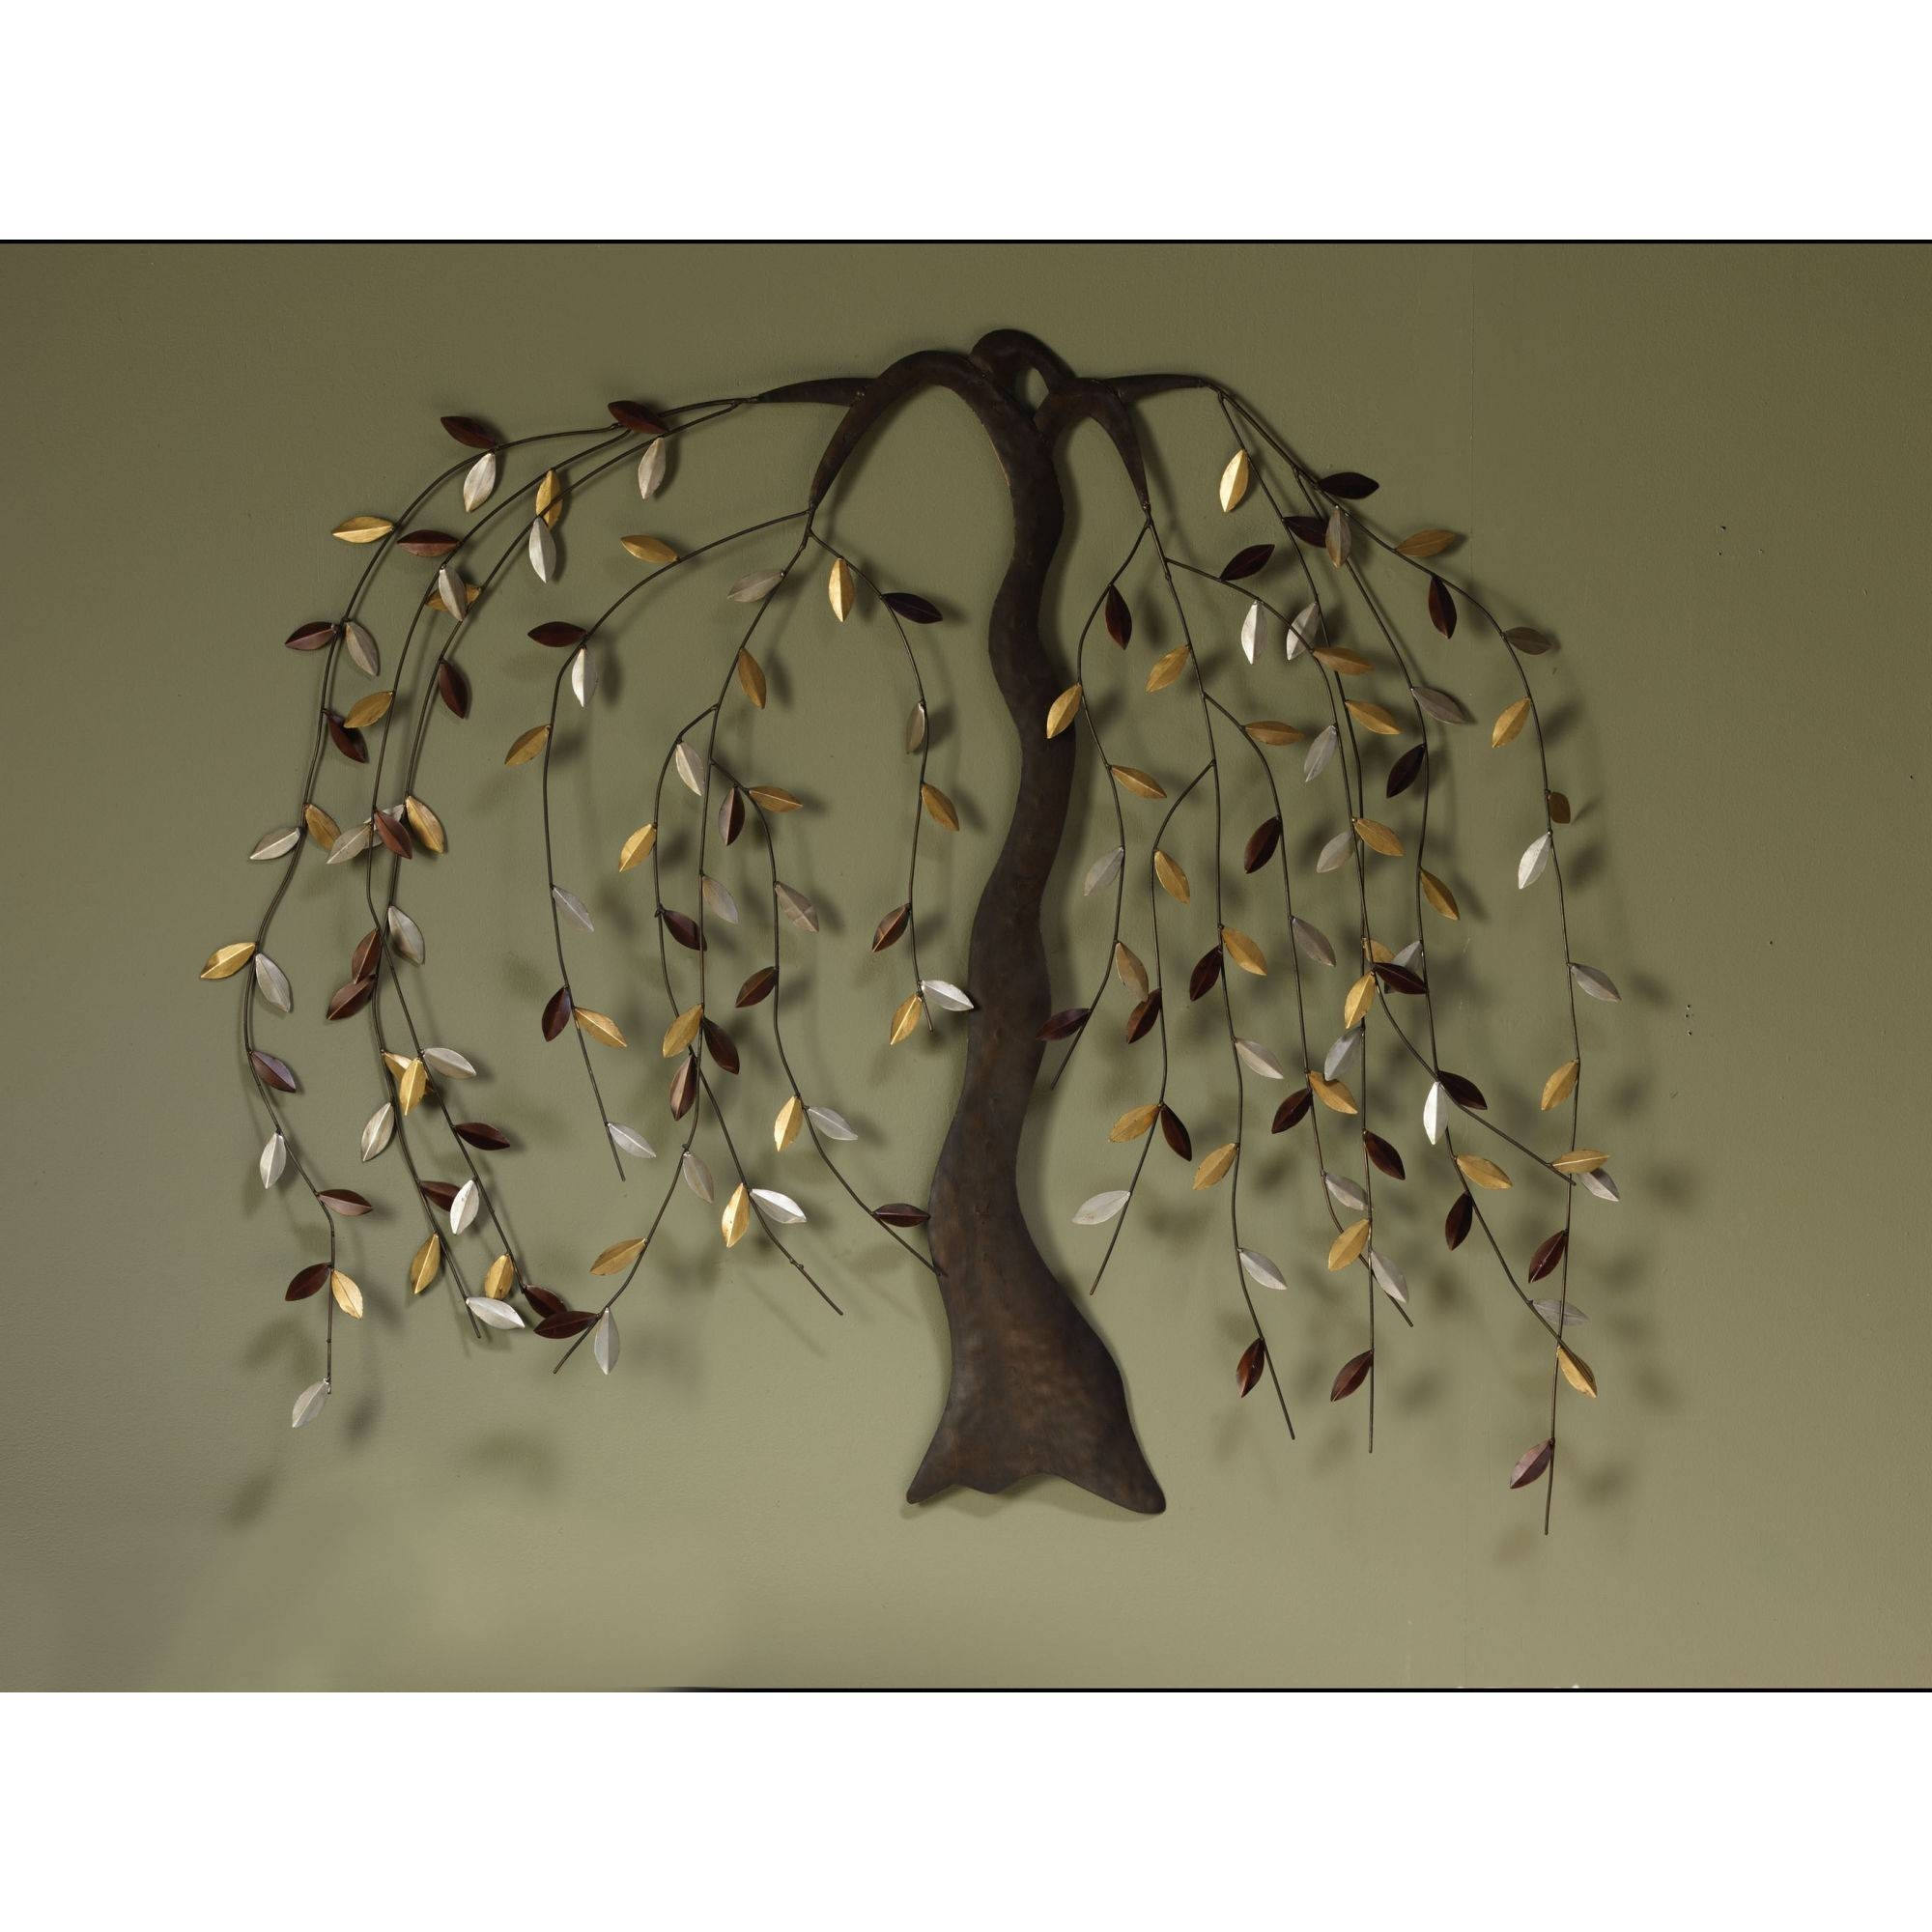 Antique Image Metal Butterfly Wall Decor Butterfly Metal Wall Pertaining To Most Recently Released Metal Wall Art Decor And Sculptures (View 1 of 20)